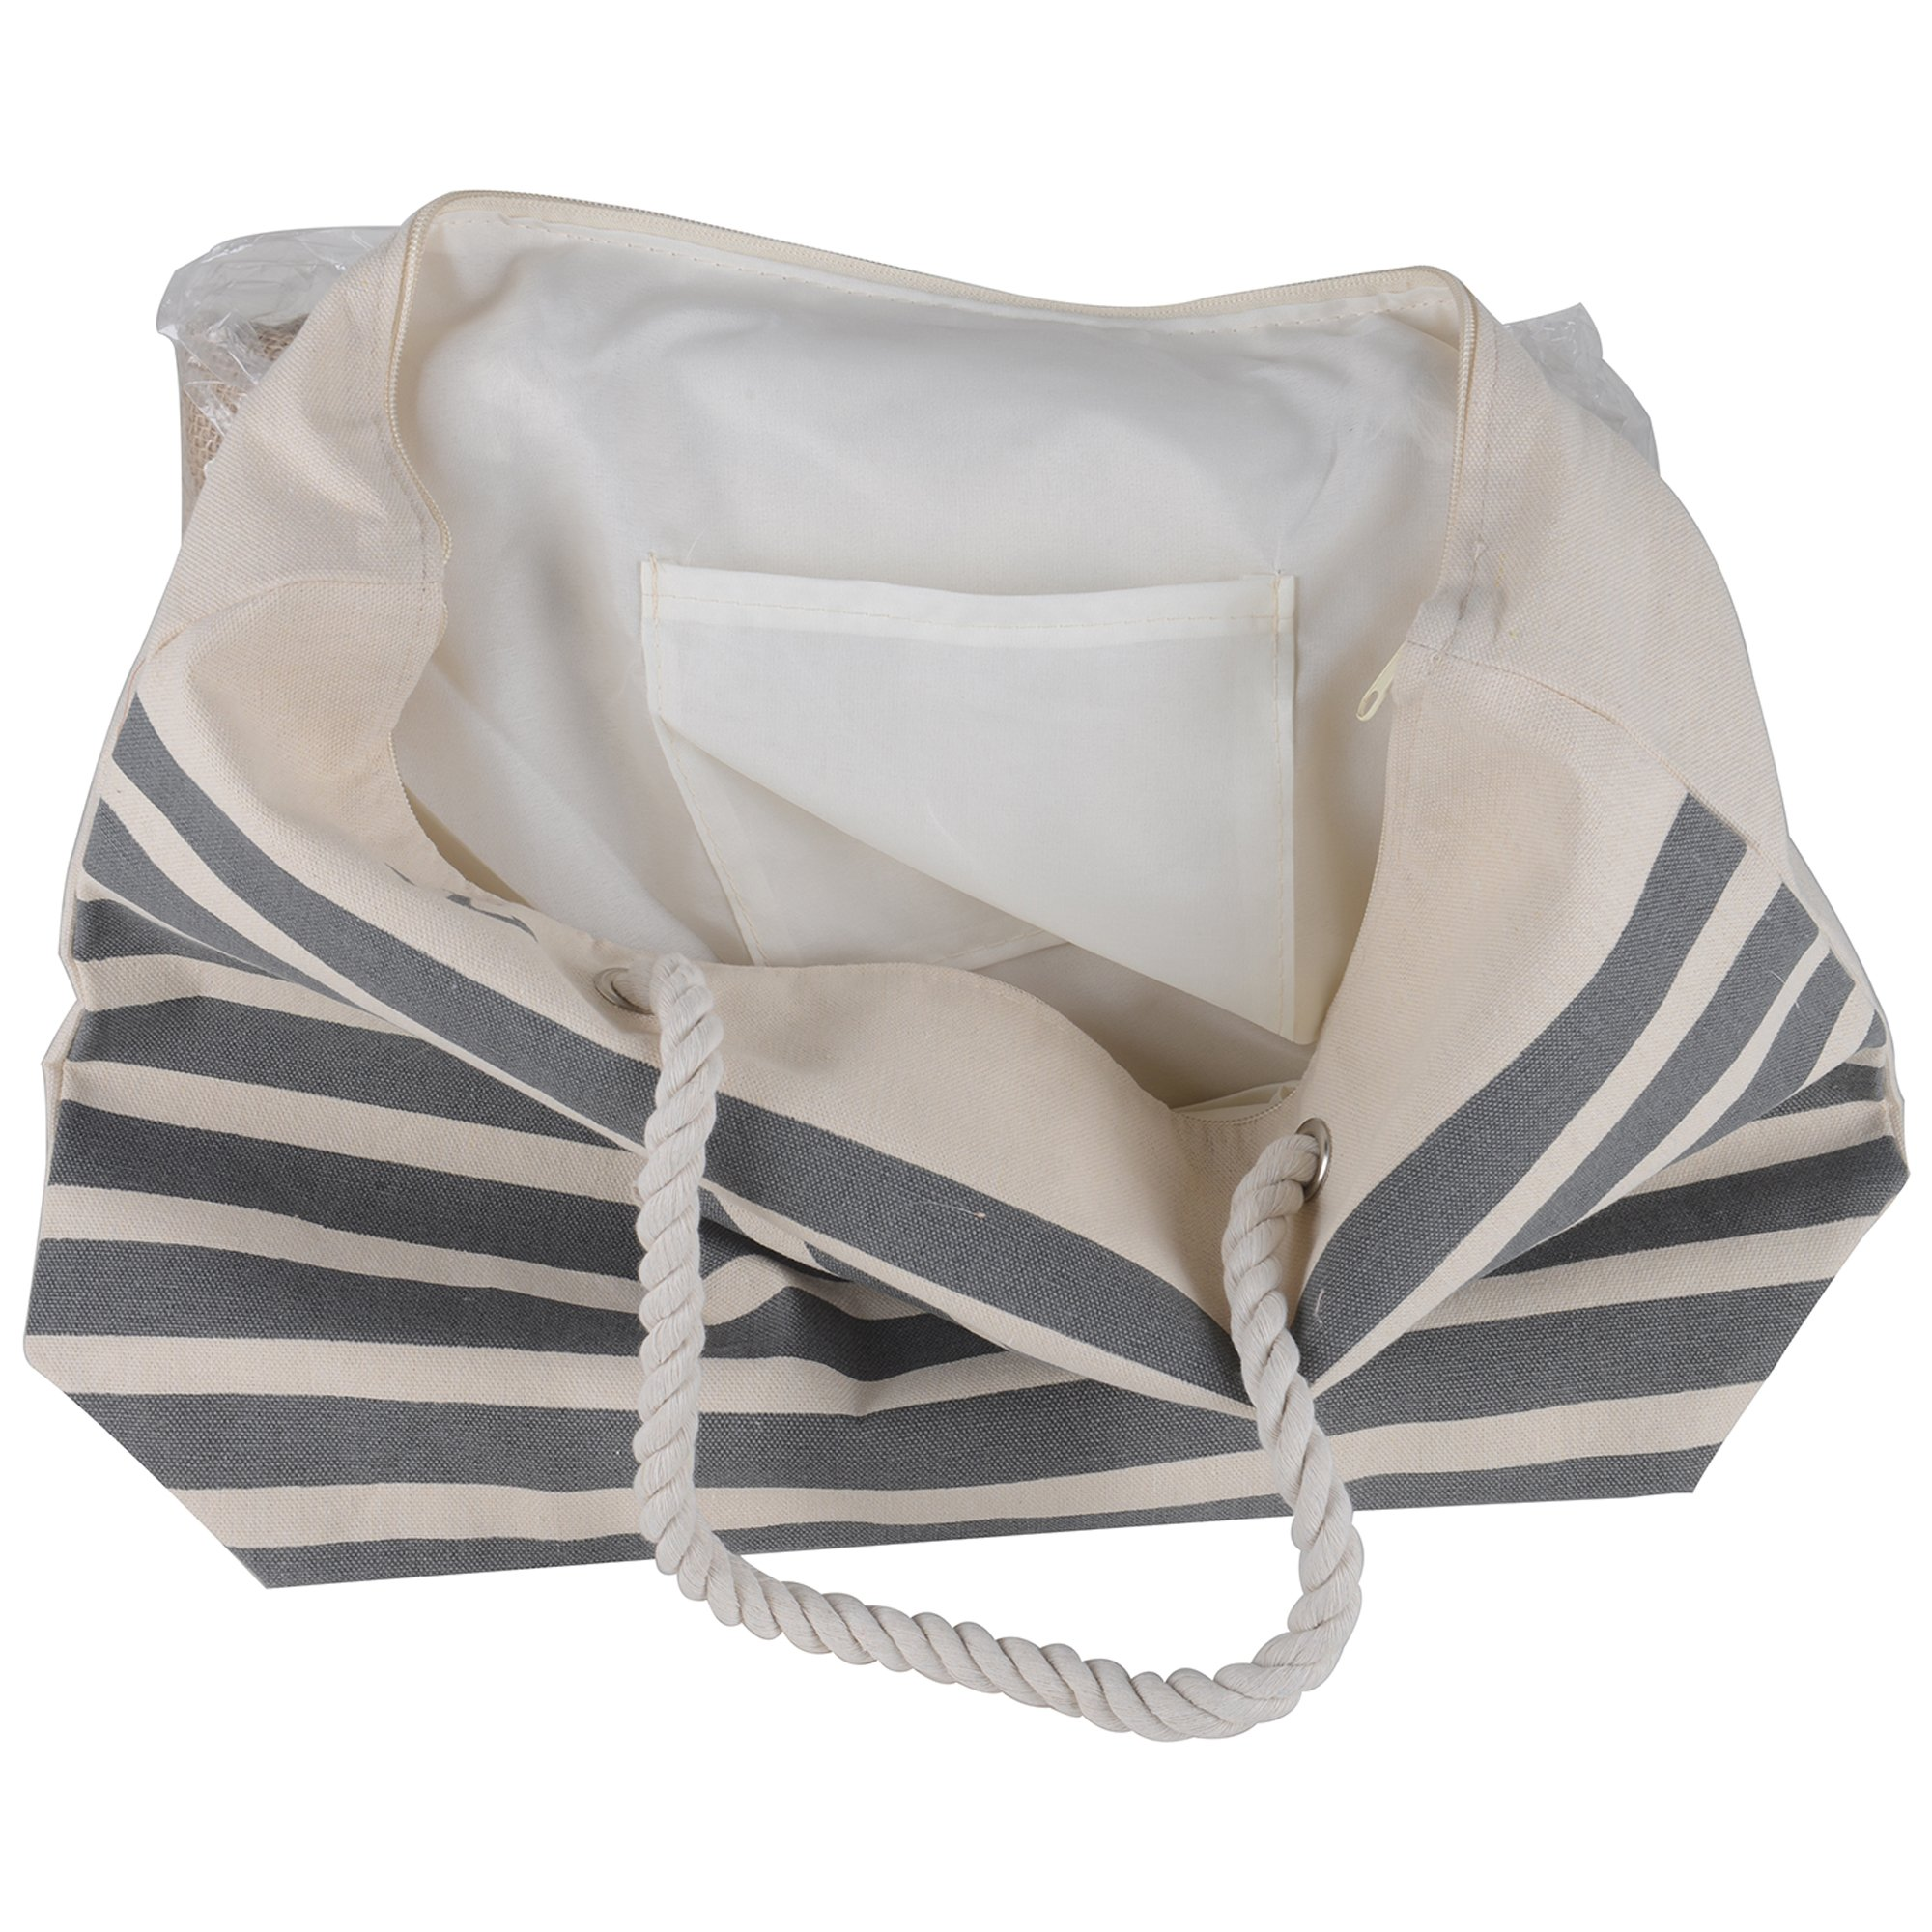 Canvas Heavy Cotton Rope Handles Stripe Zipper Closure Women Premium Straw Beach Tote Bag by BB (Grey) by BB (Image #3)